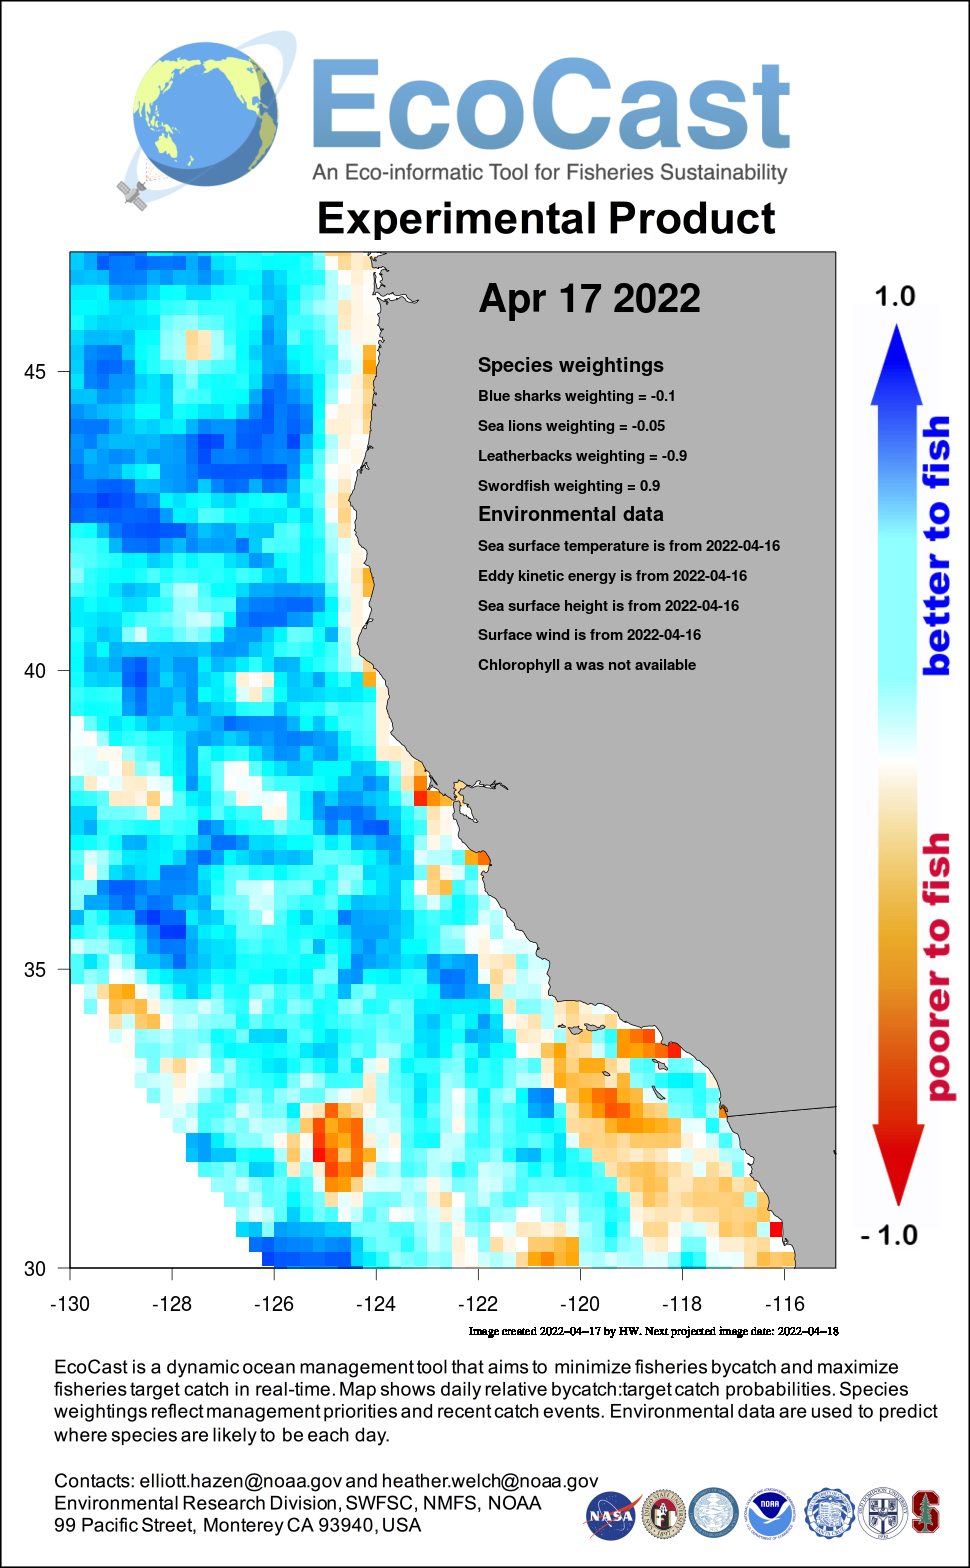 Mean sea surface temperature off Southern California - 2 days ago